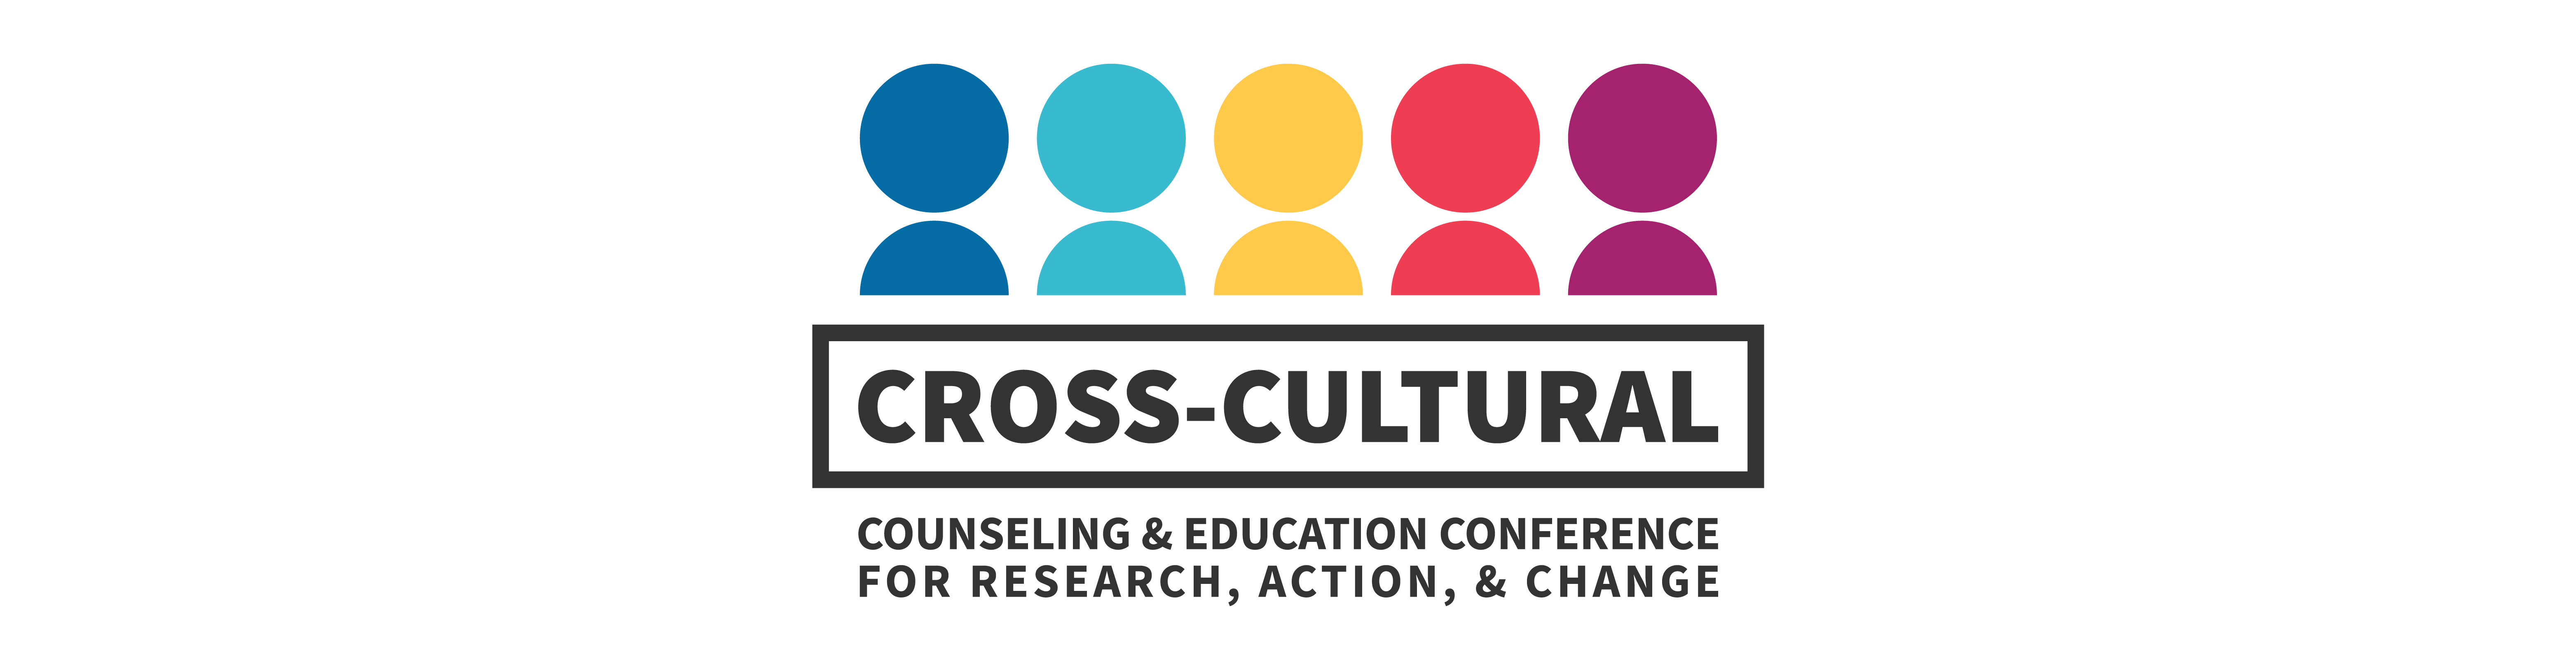 Cross-Cultural Counseling and Education Conference for Research, Action, and Change